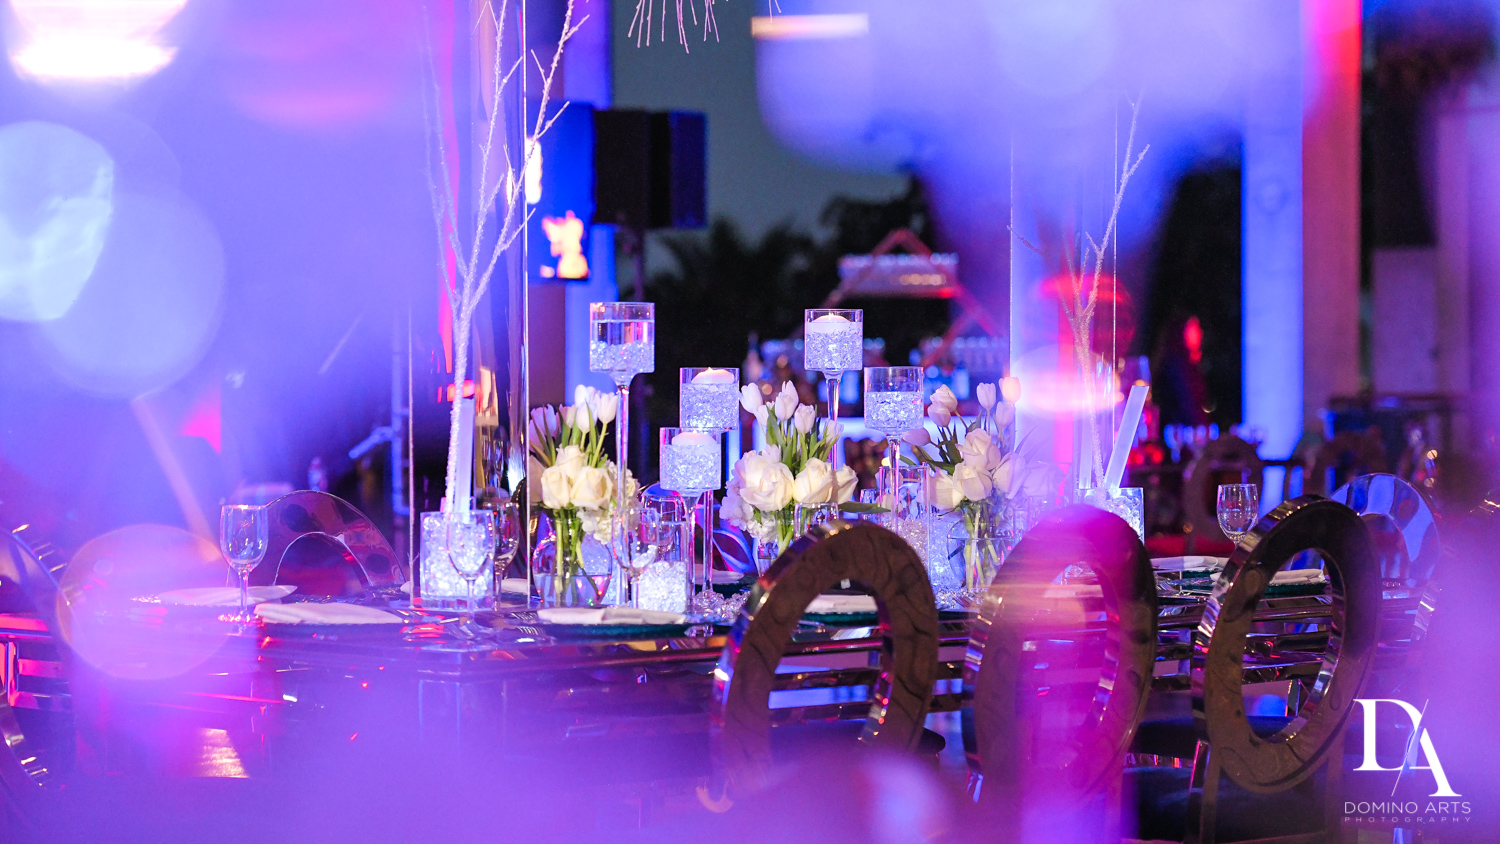 amazing decor at Fire & Ice B'Nai Mitzvah at Perez Art Museum Miami by Domino Arts Photography